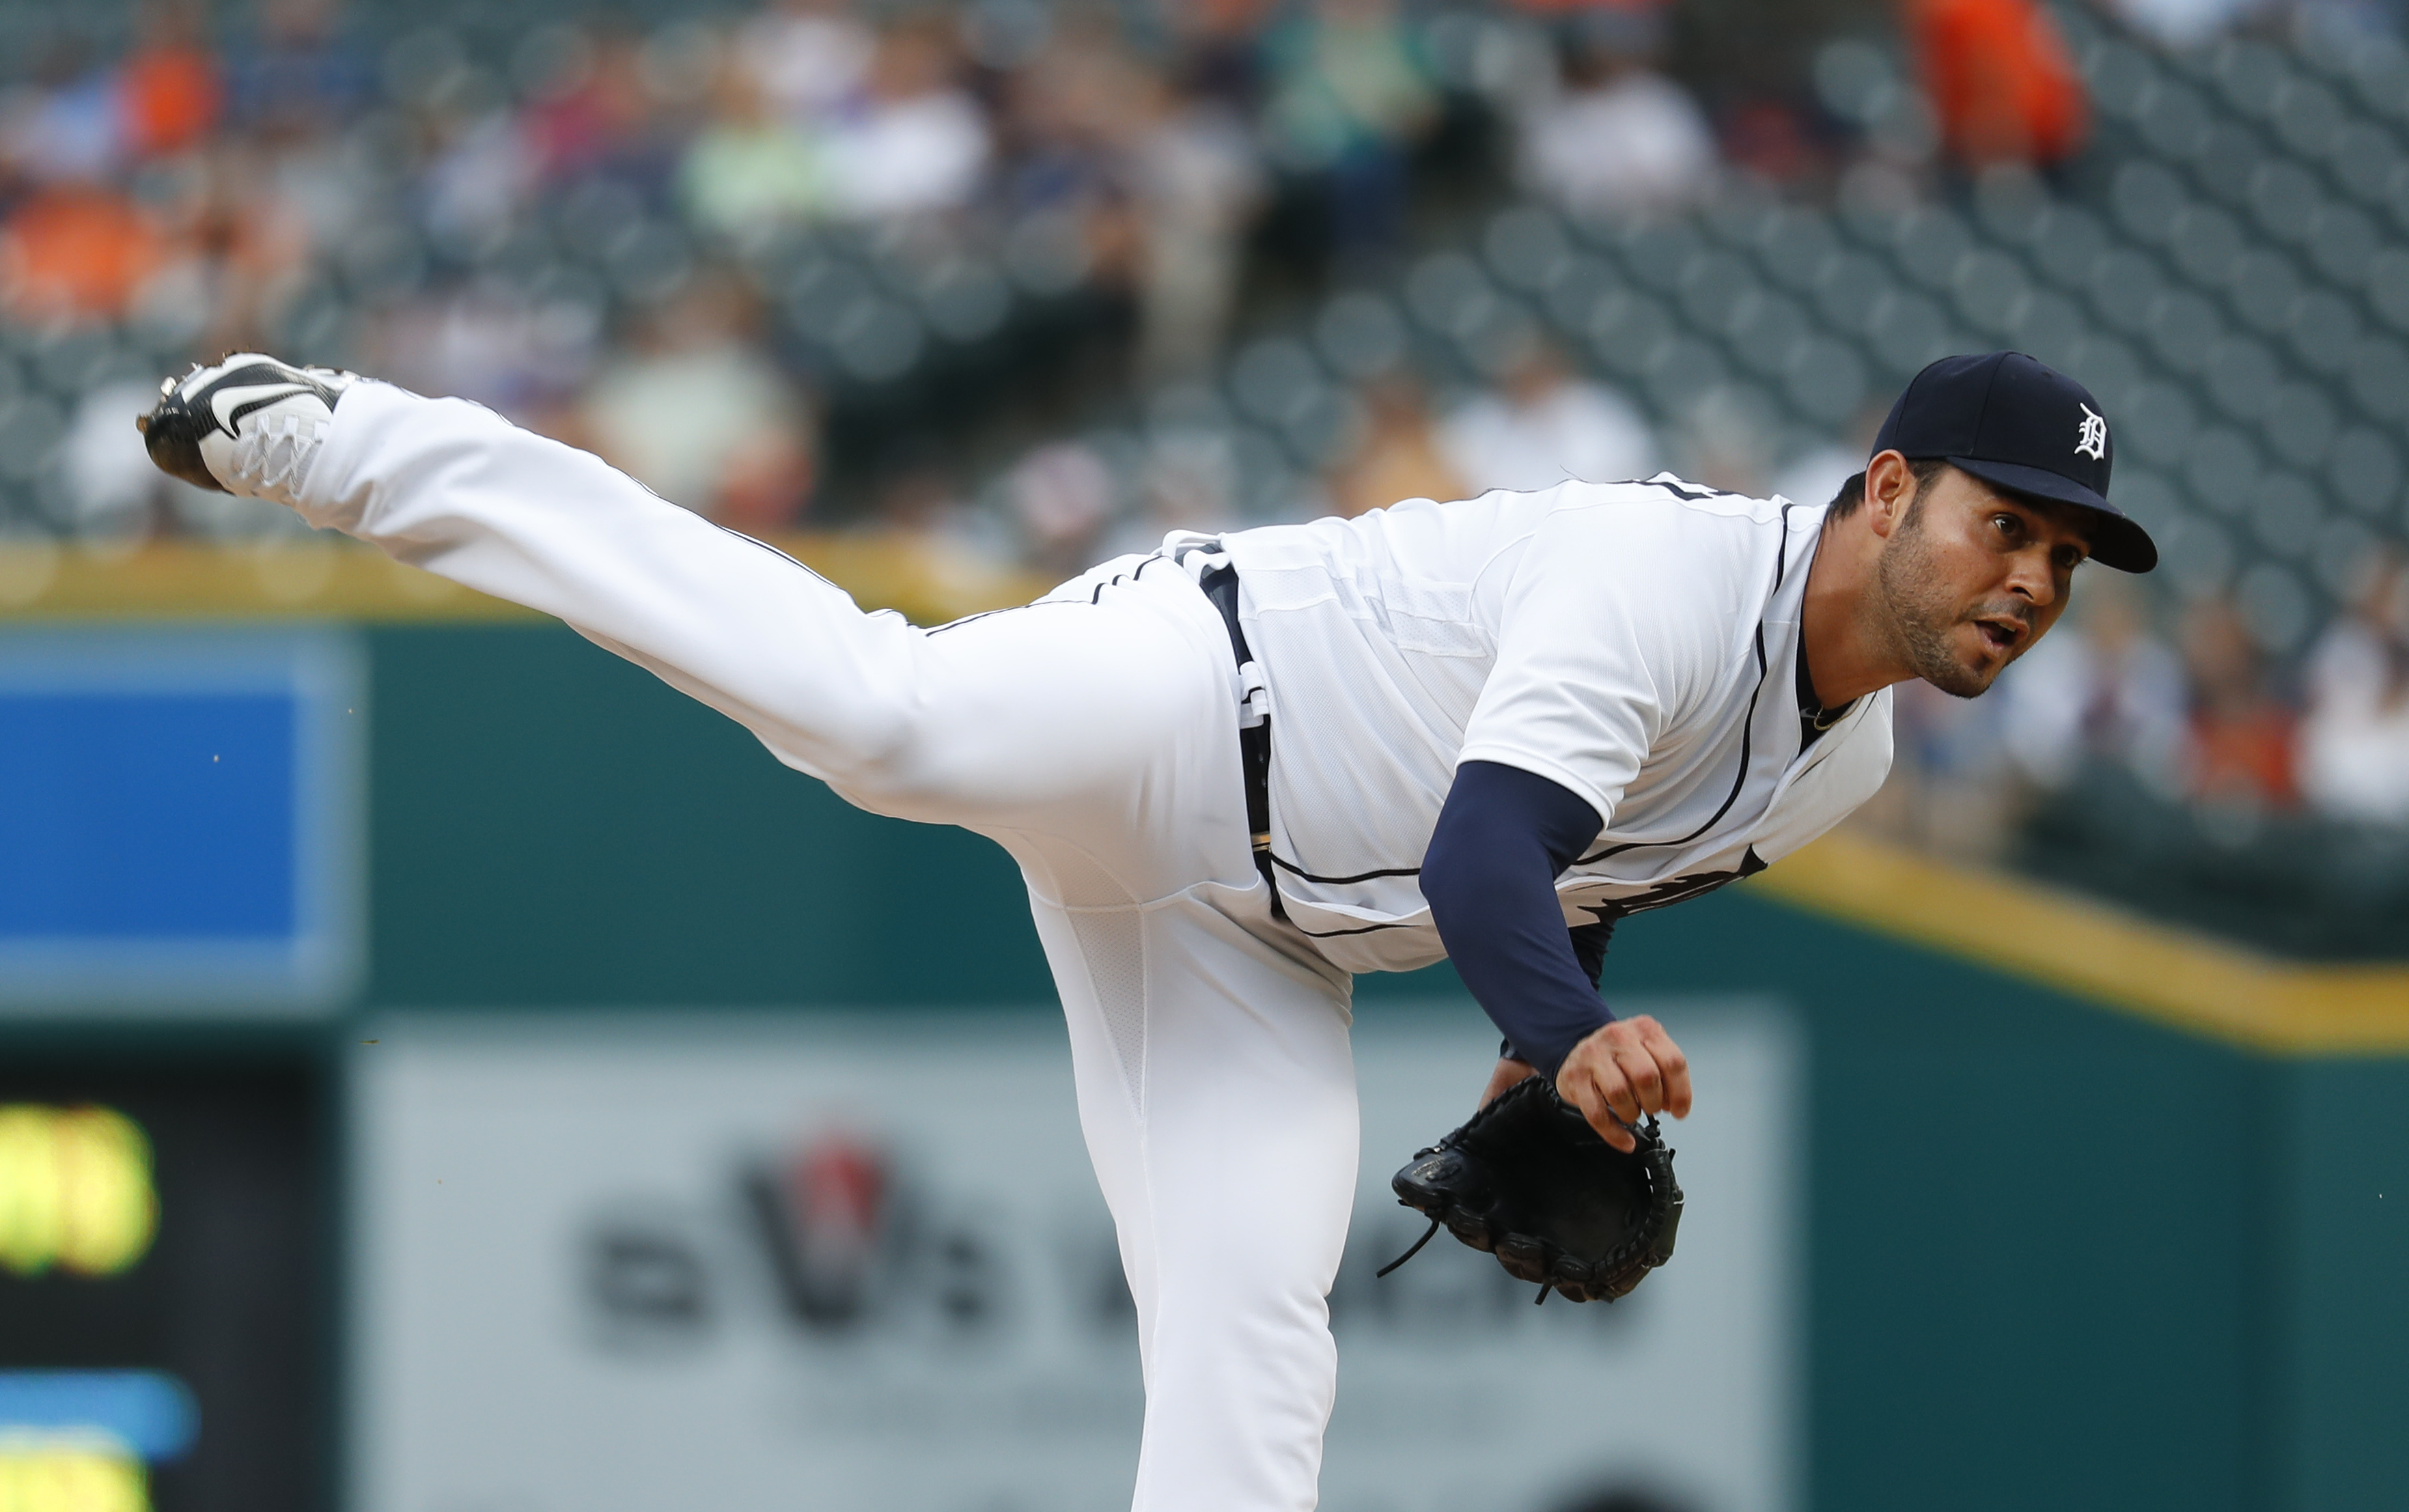 Detroit Tigers pitcher Anibal Sanchez throws against the Kansas City Royals during the first inning of a baseball game in Detroit, Wednesday, Aug. 17, 2016. (AP Photo/Paul Sancya)